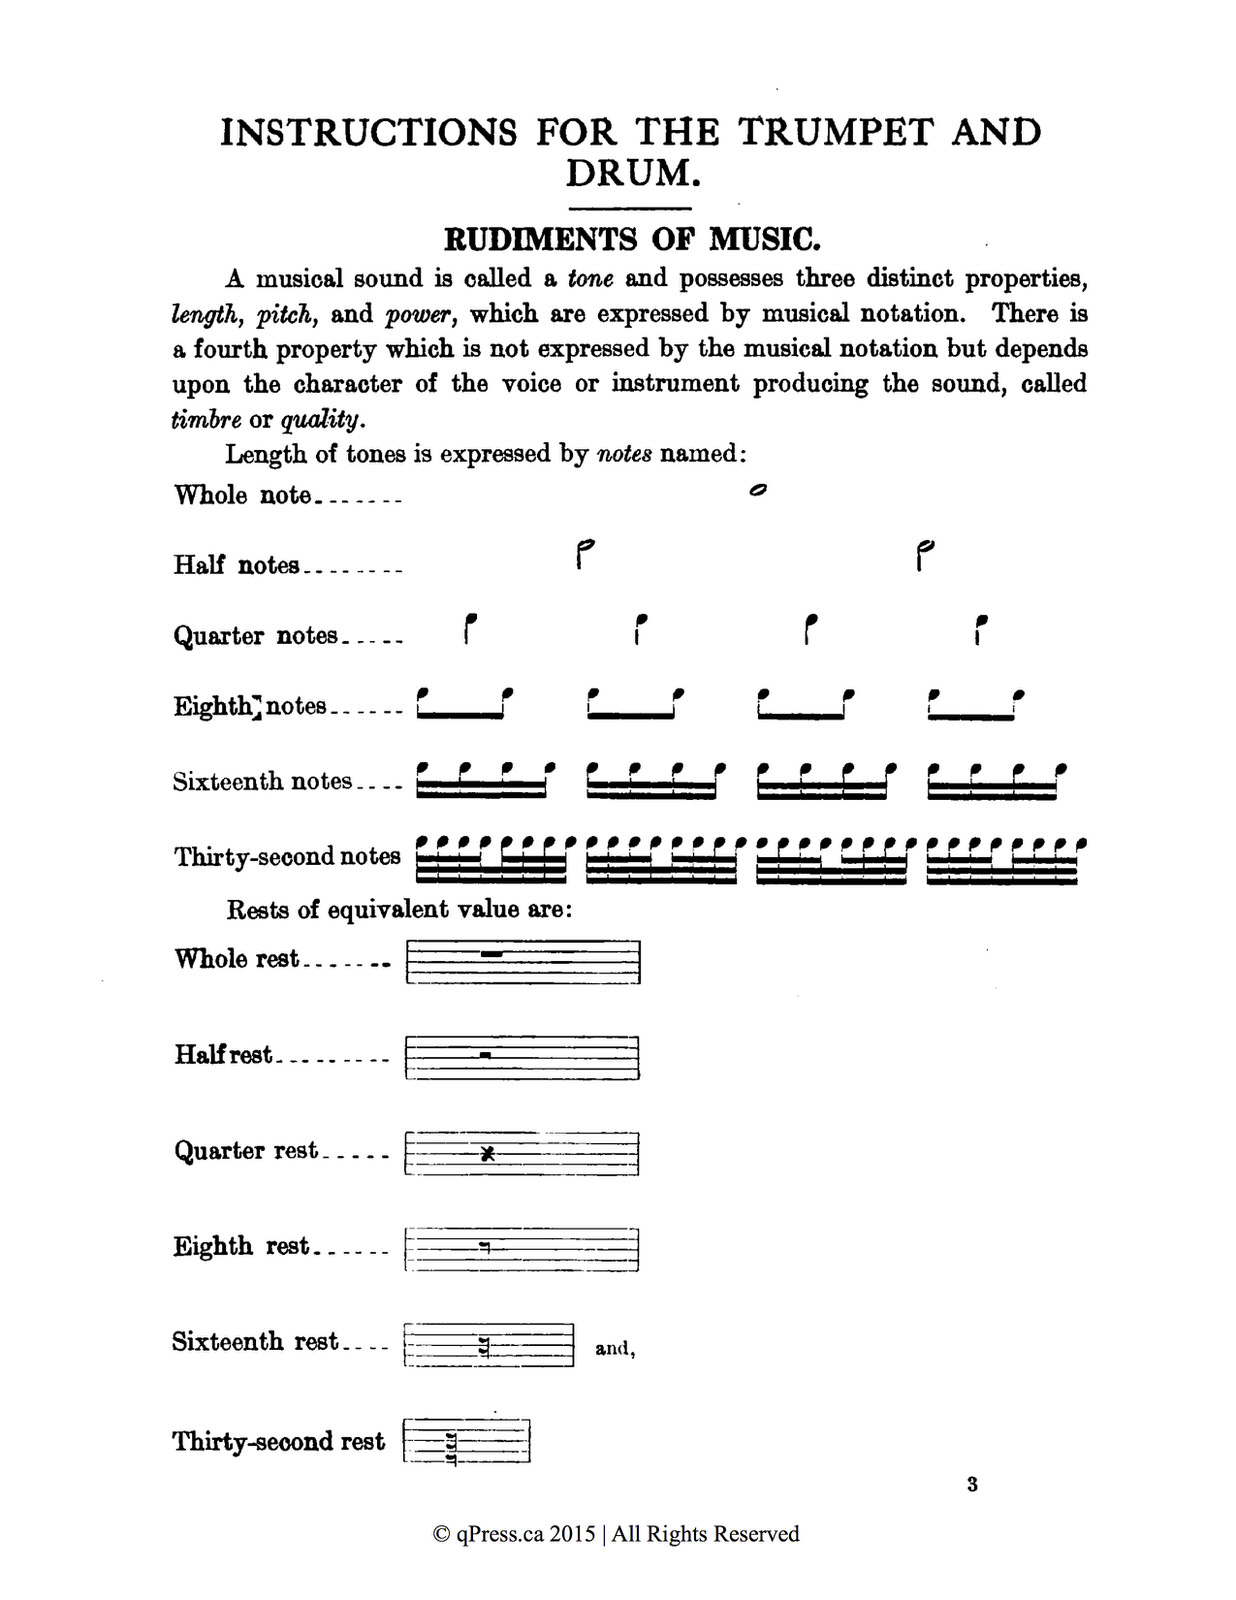 Military, Instructions for the trumpet and drum 2